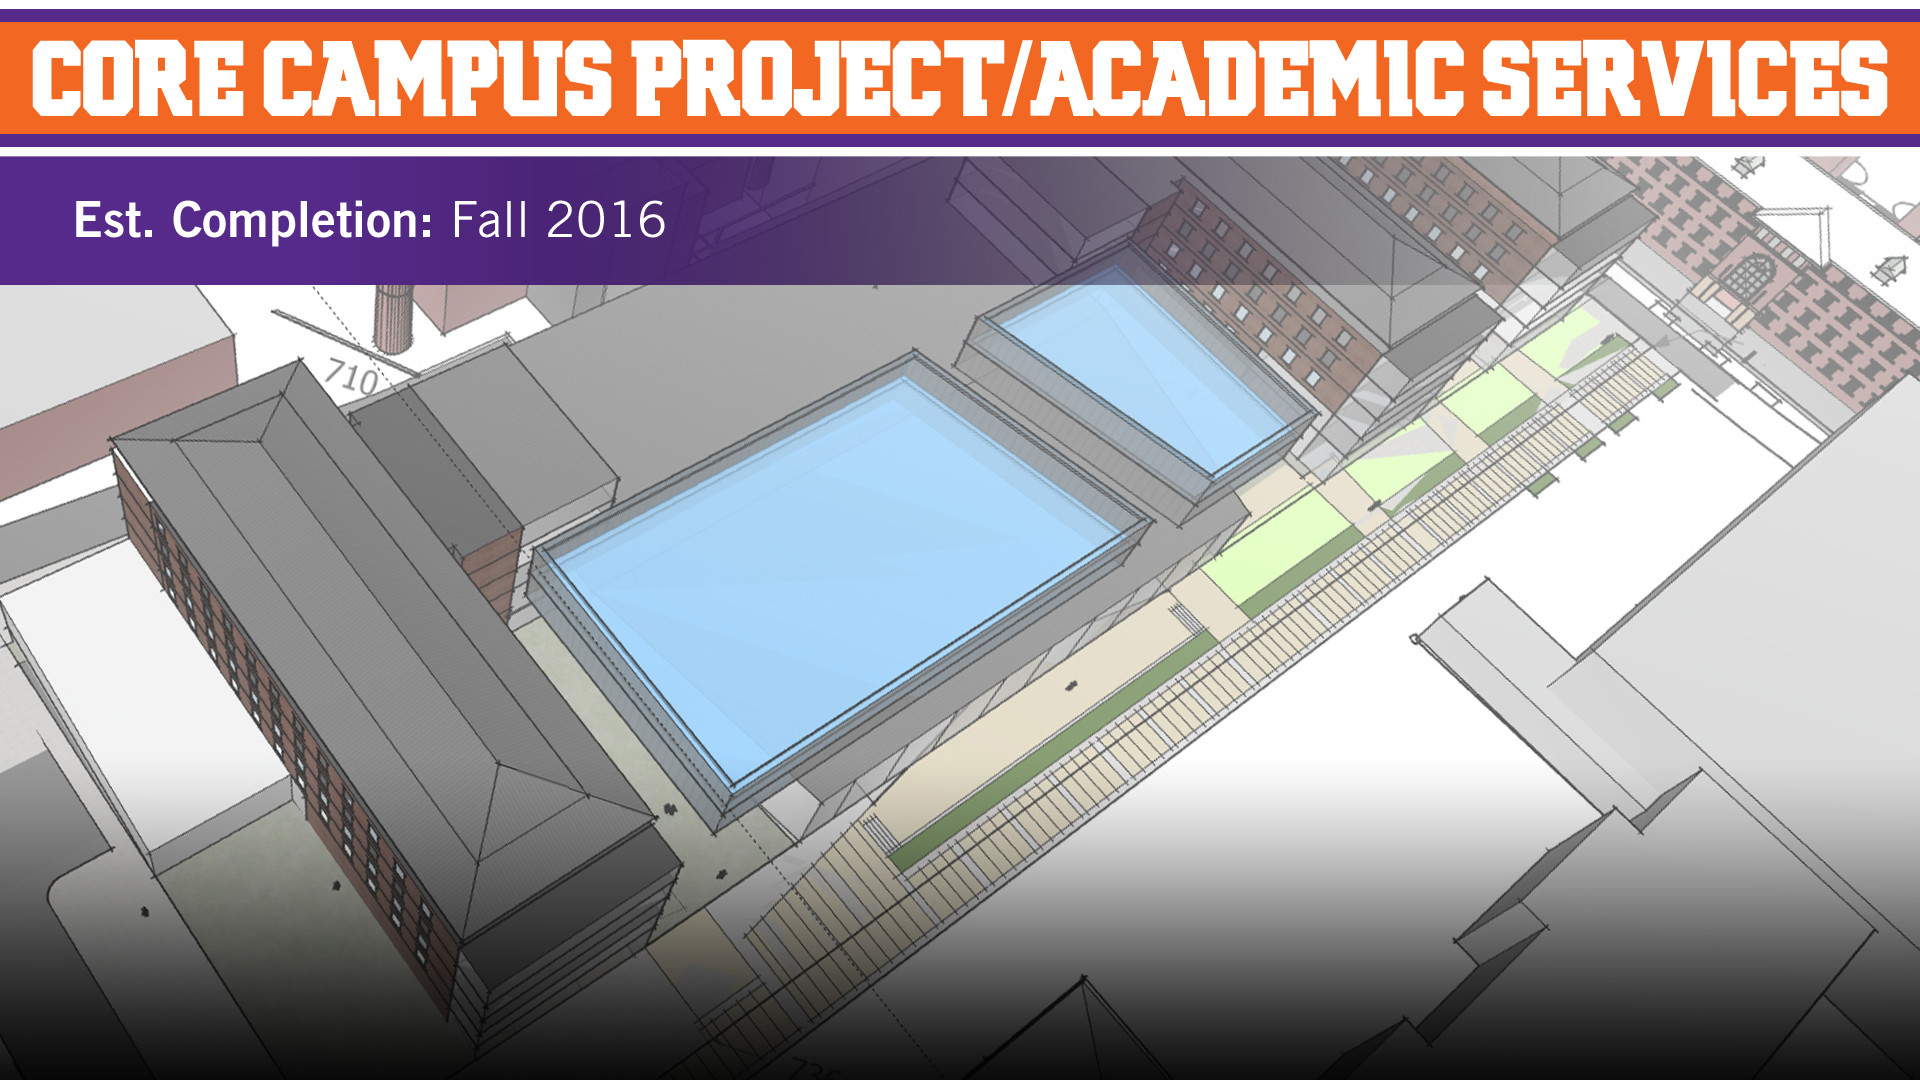 Core Campus Project/Academic Services